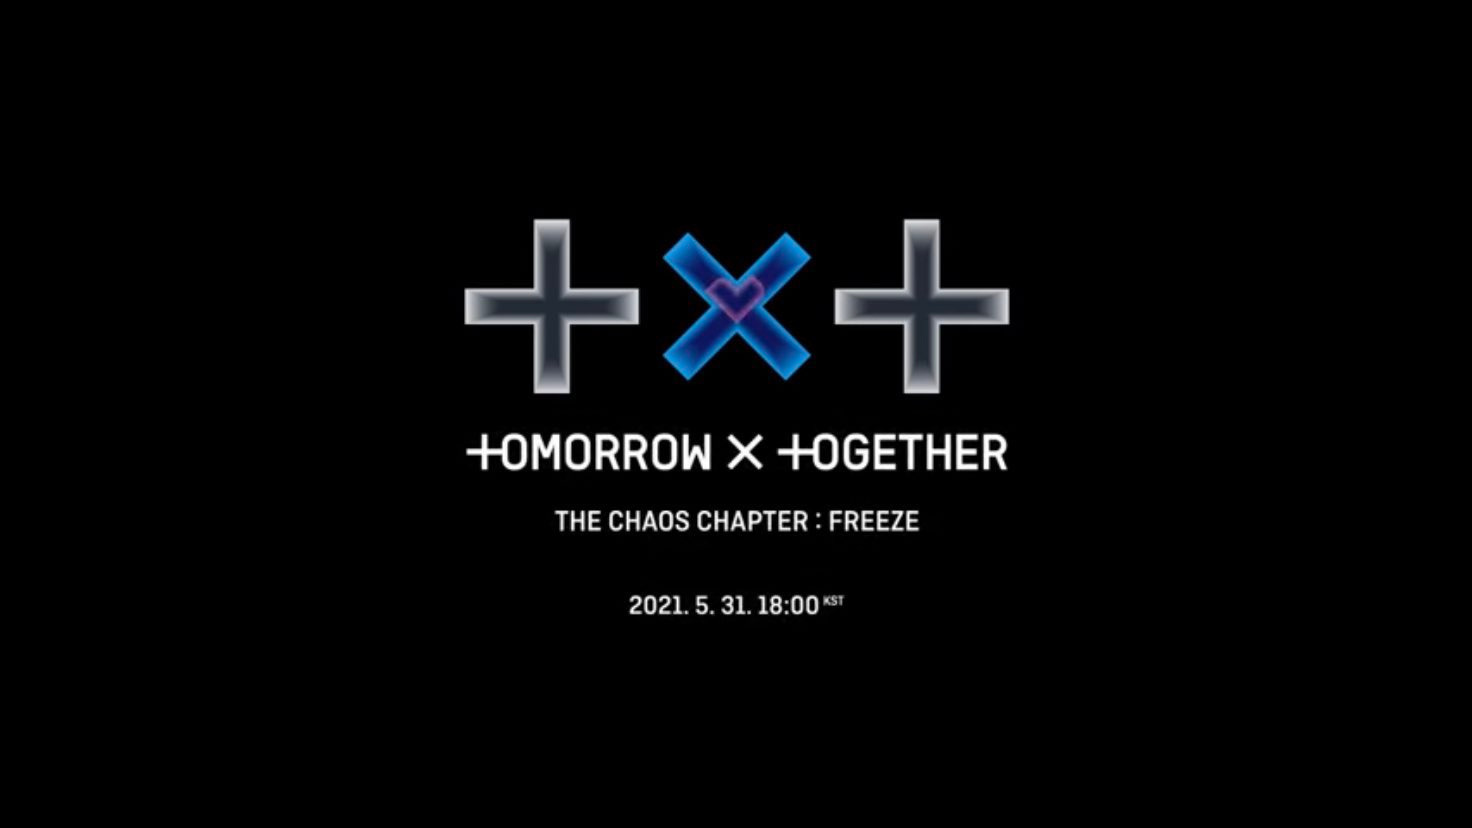 TXT on V App — s2021e49 — The Chaos Chapter: FREEZE